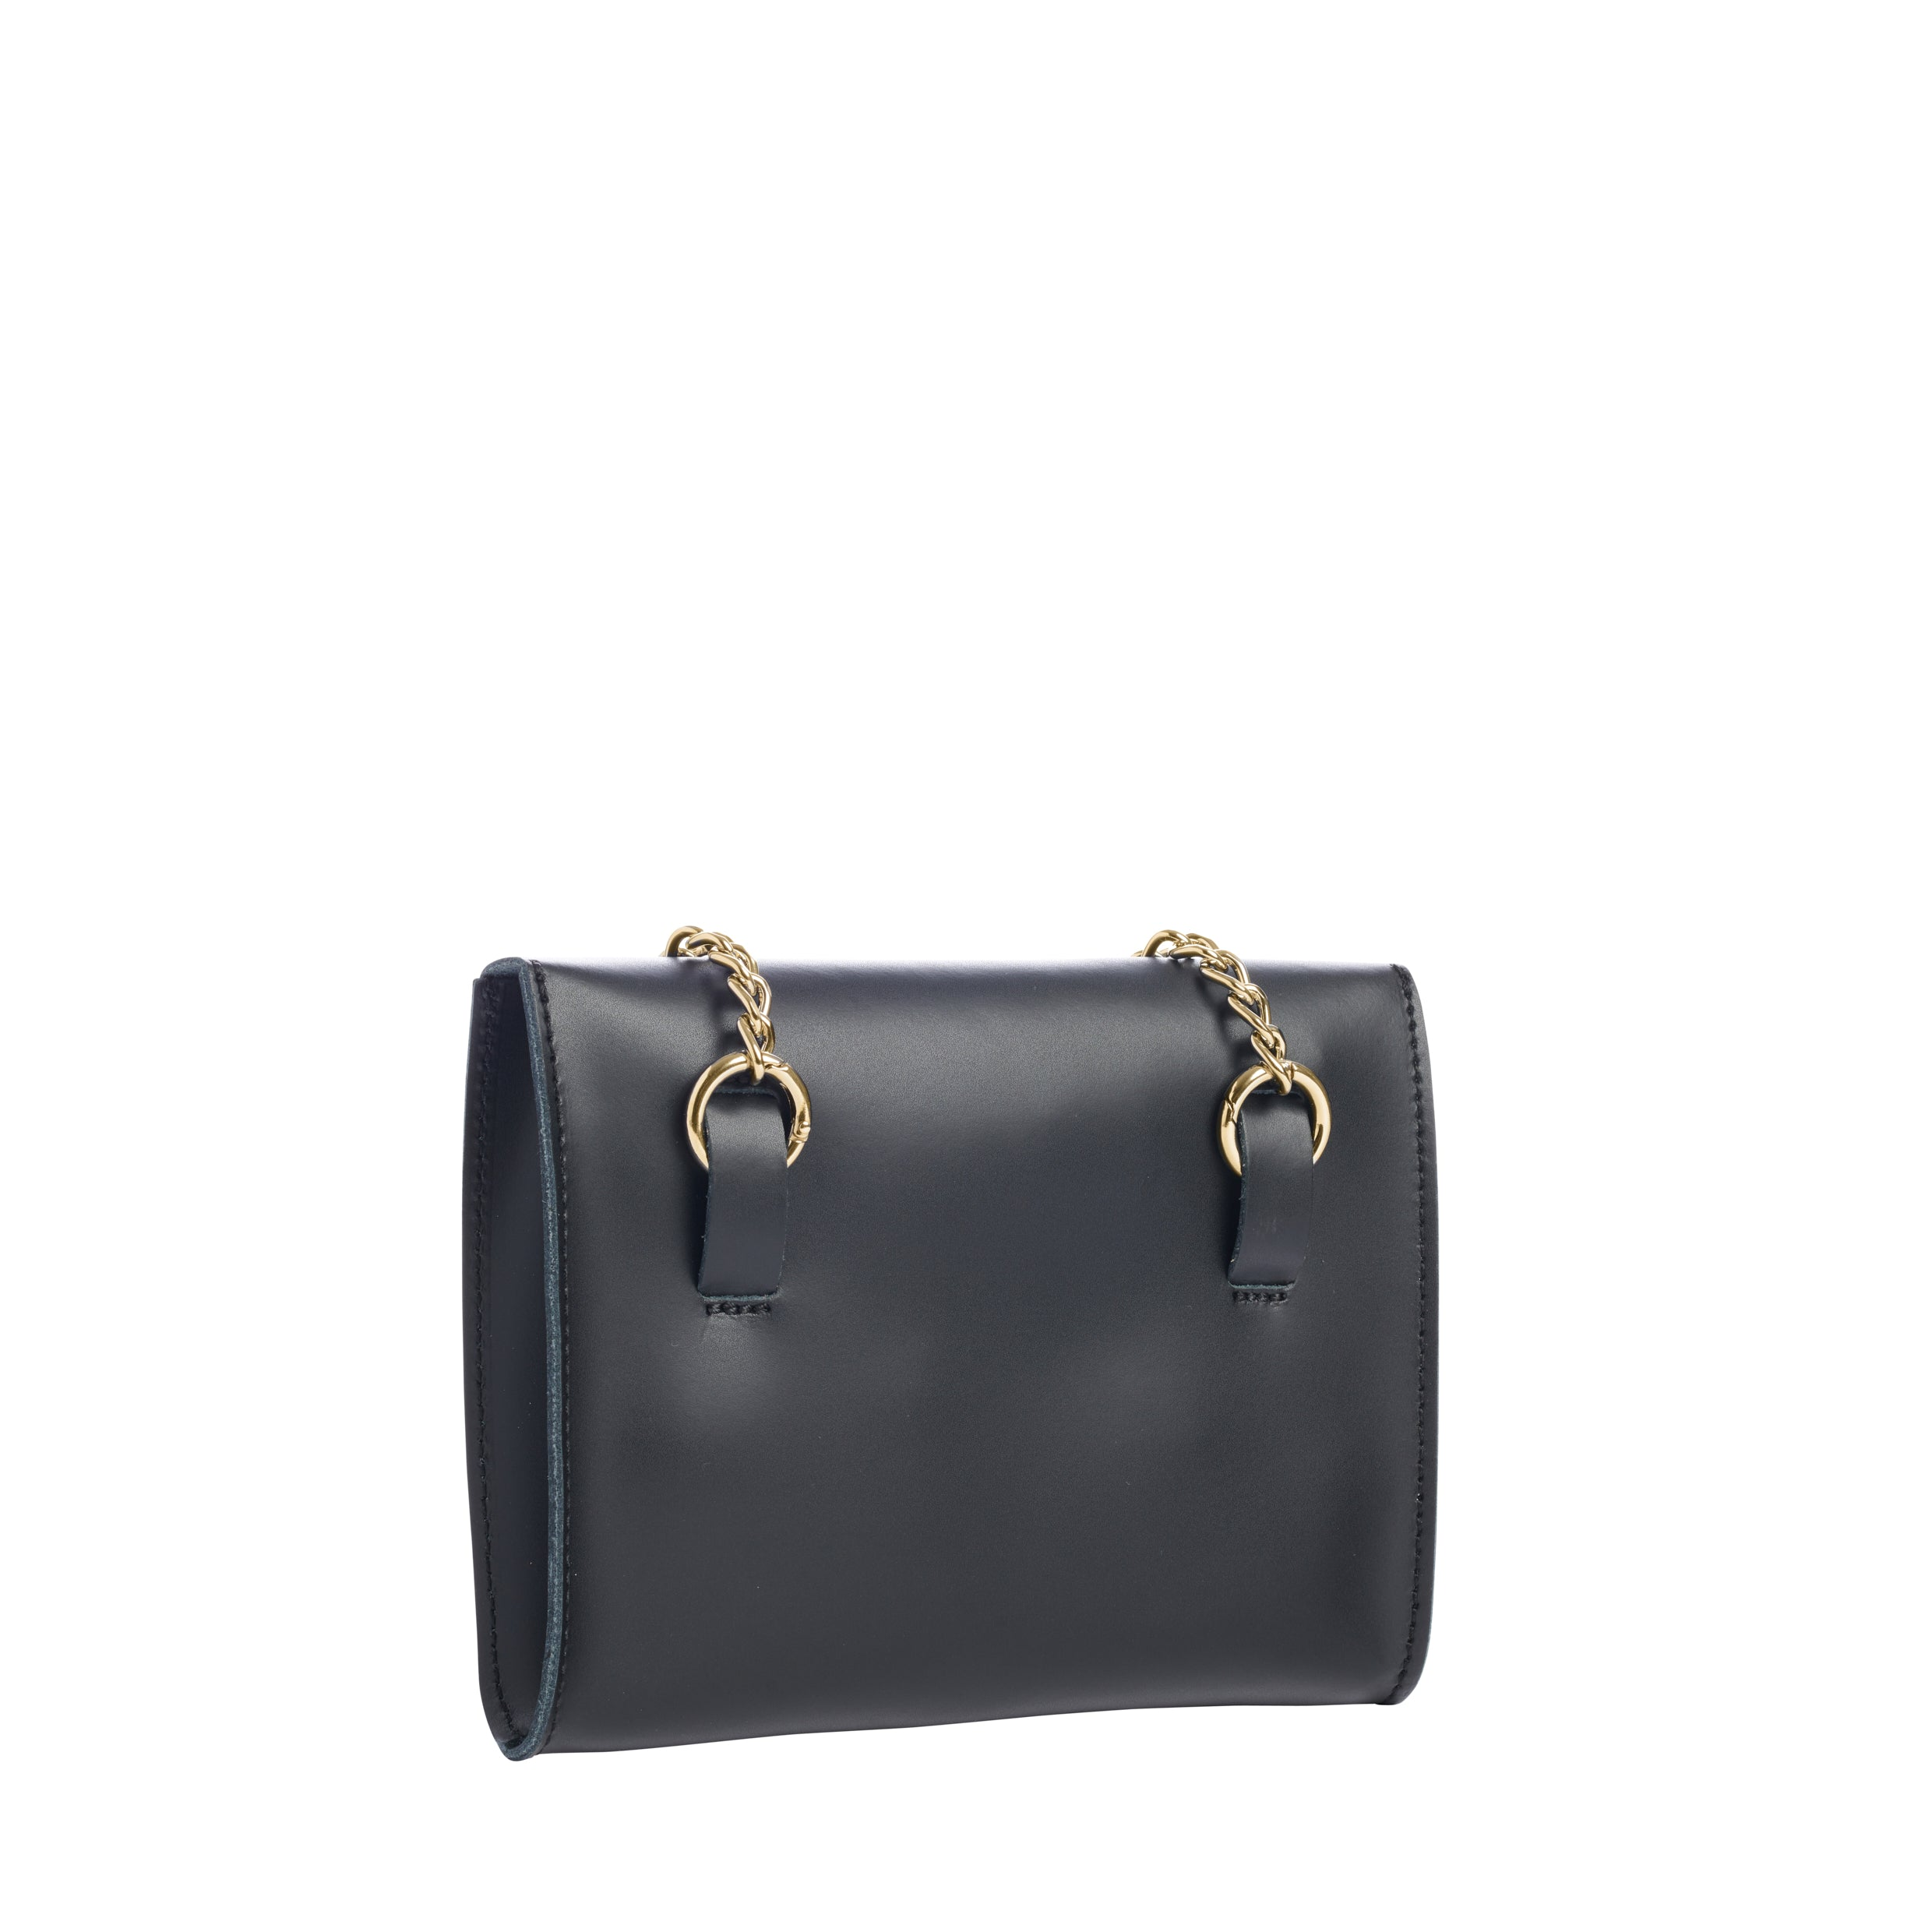 Marie Martens Mini Bag Titi Black